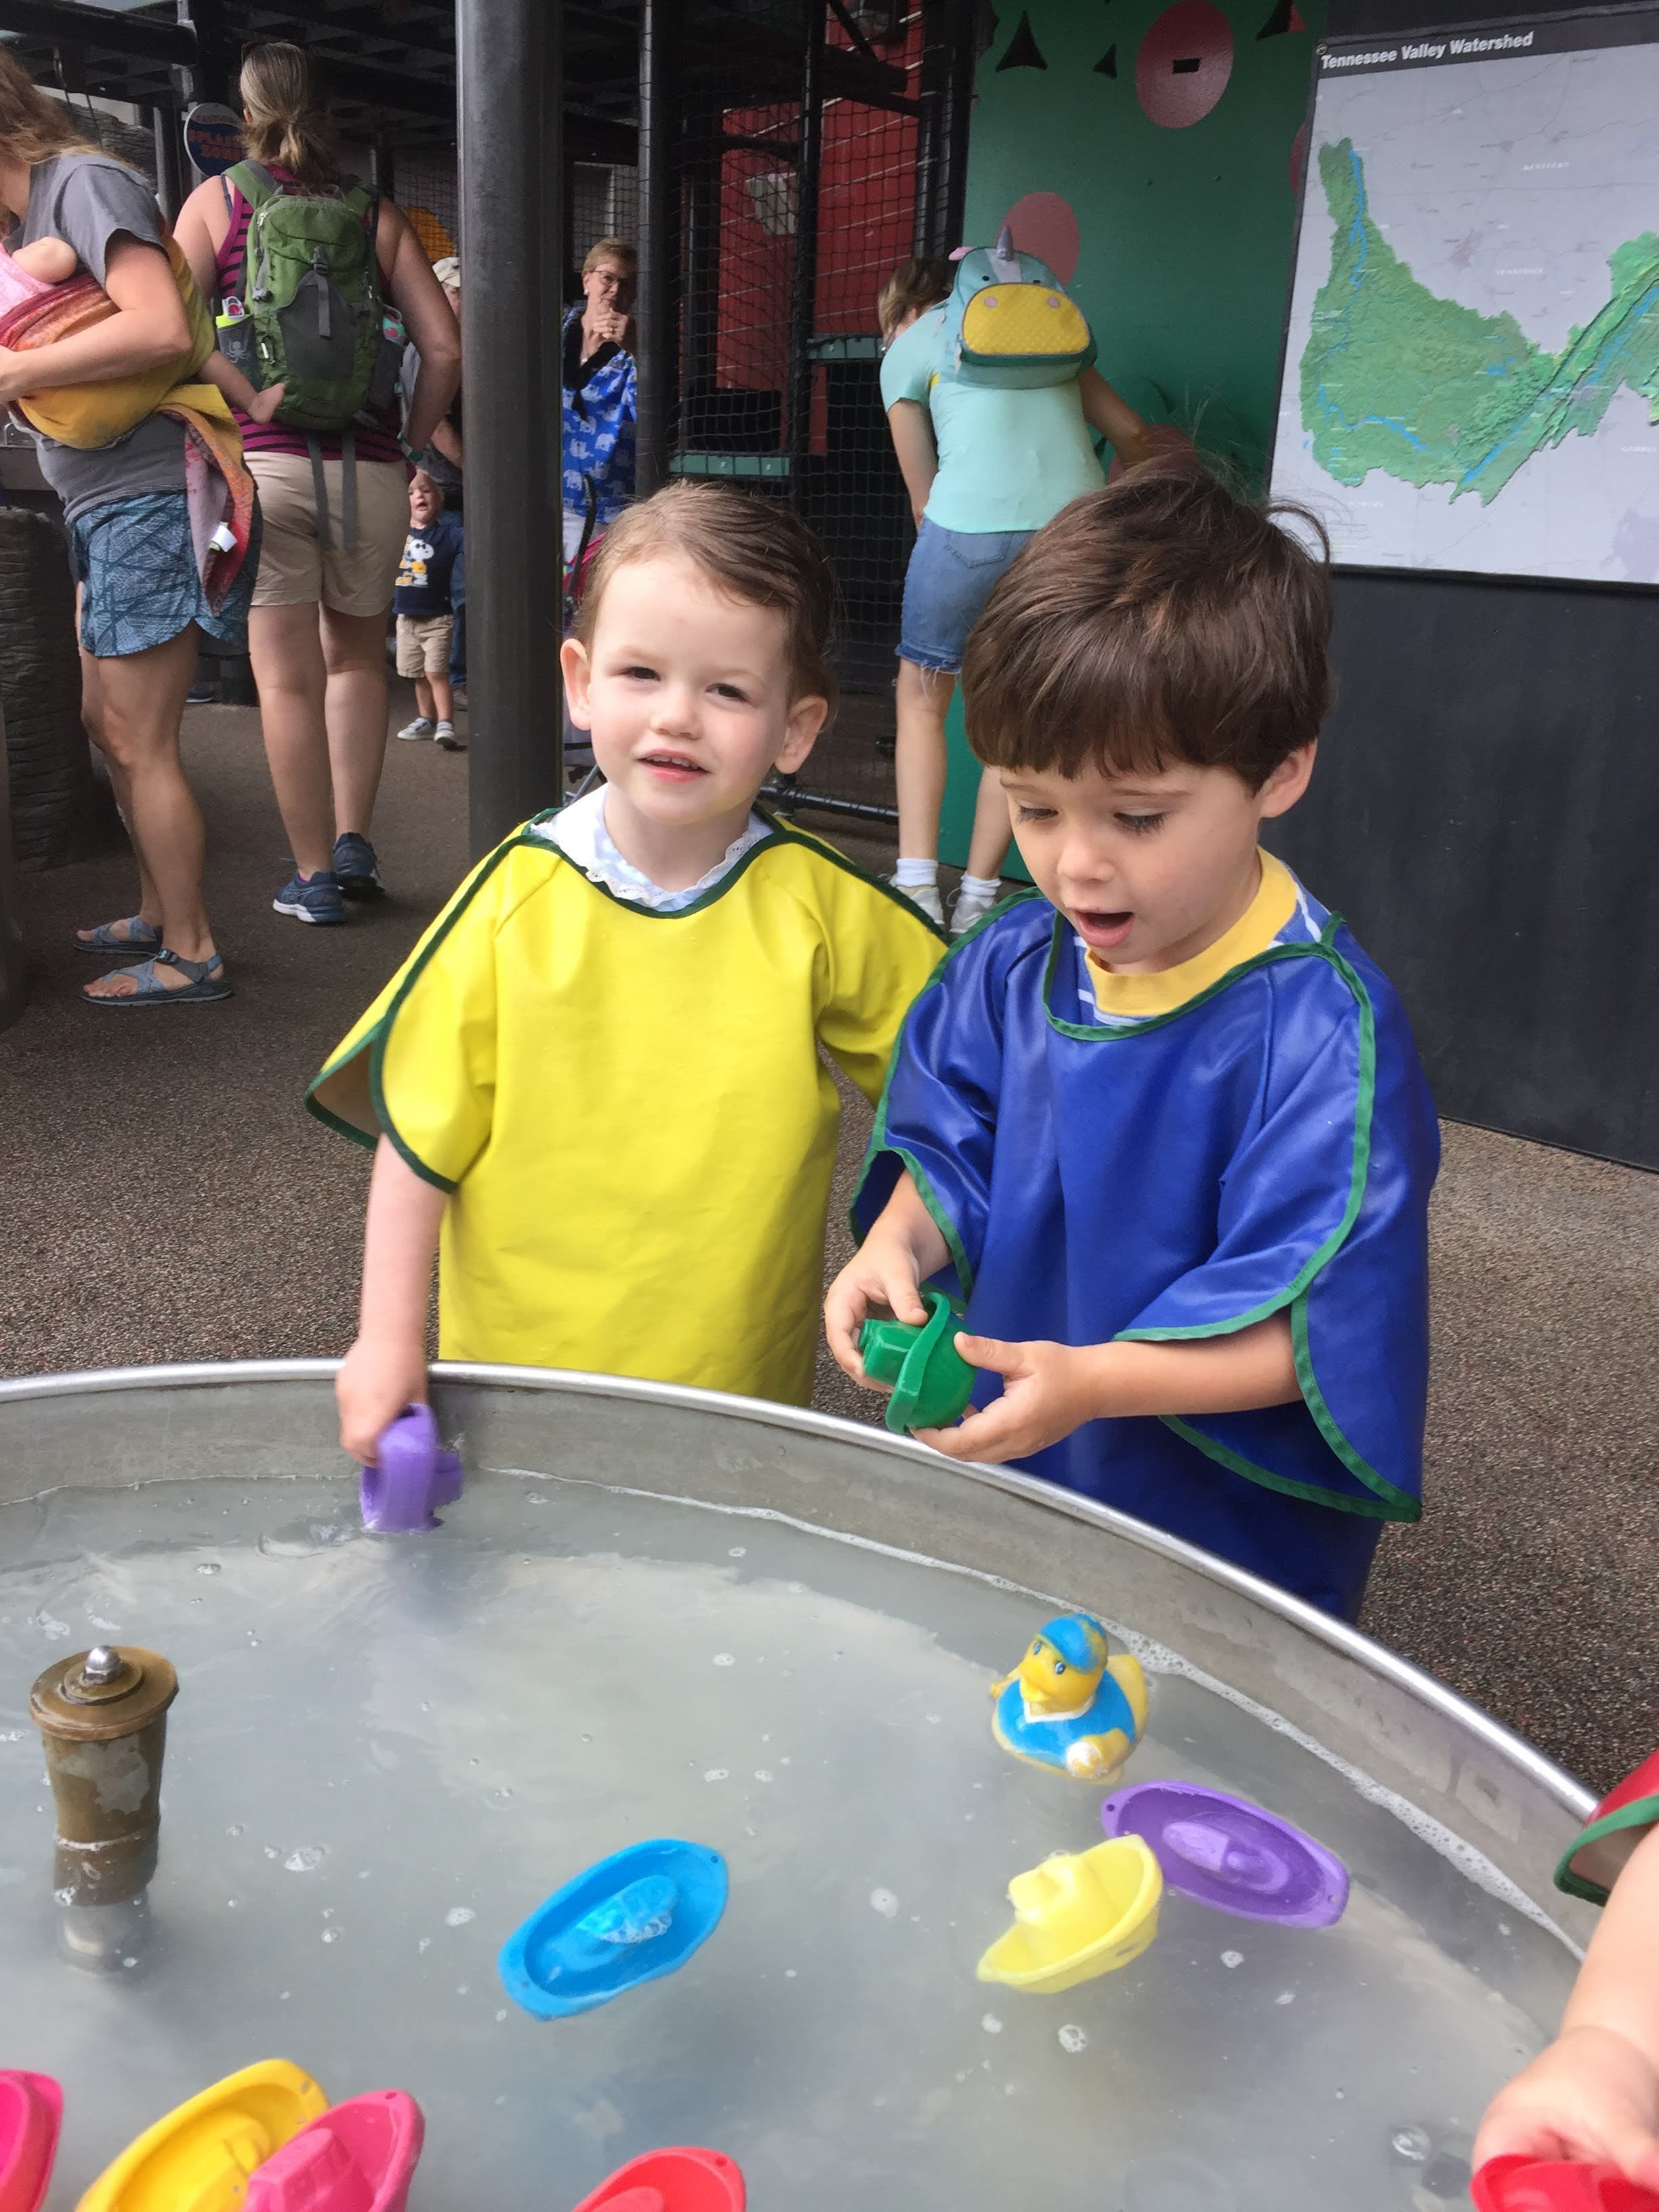 Playing at the Creative Discovery Museum with my cousin